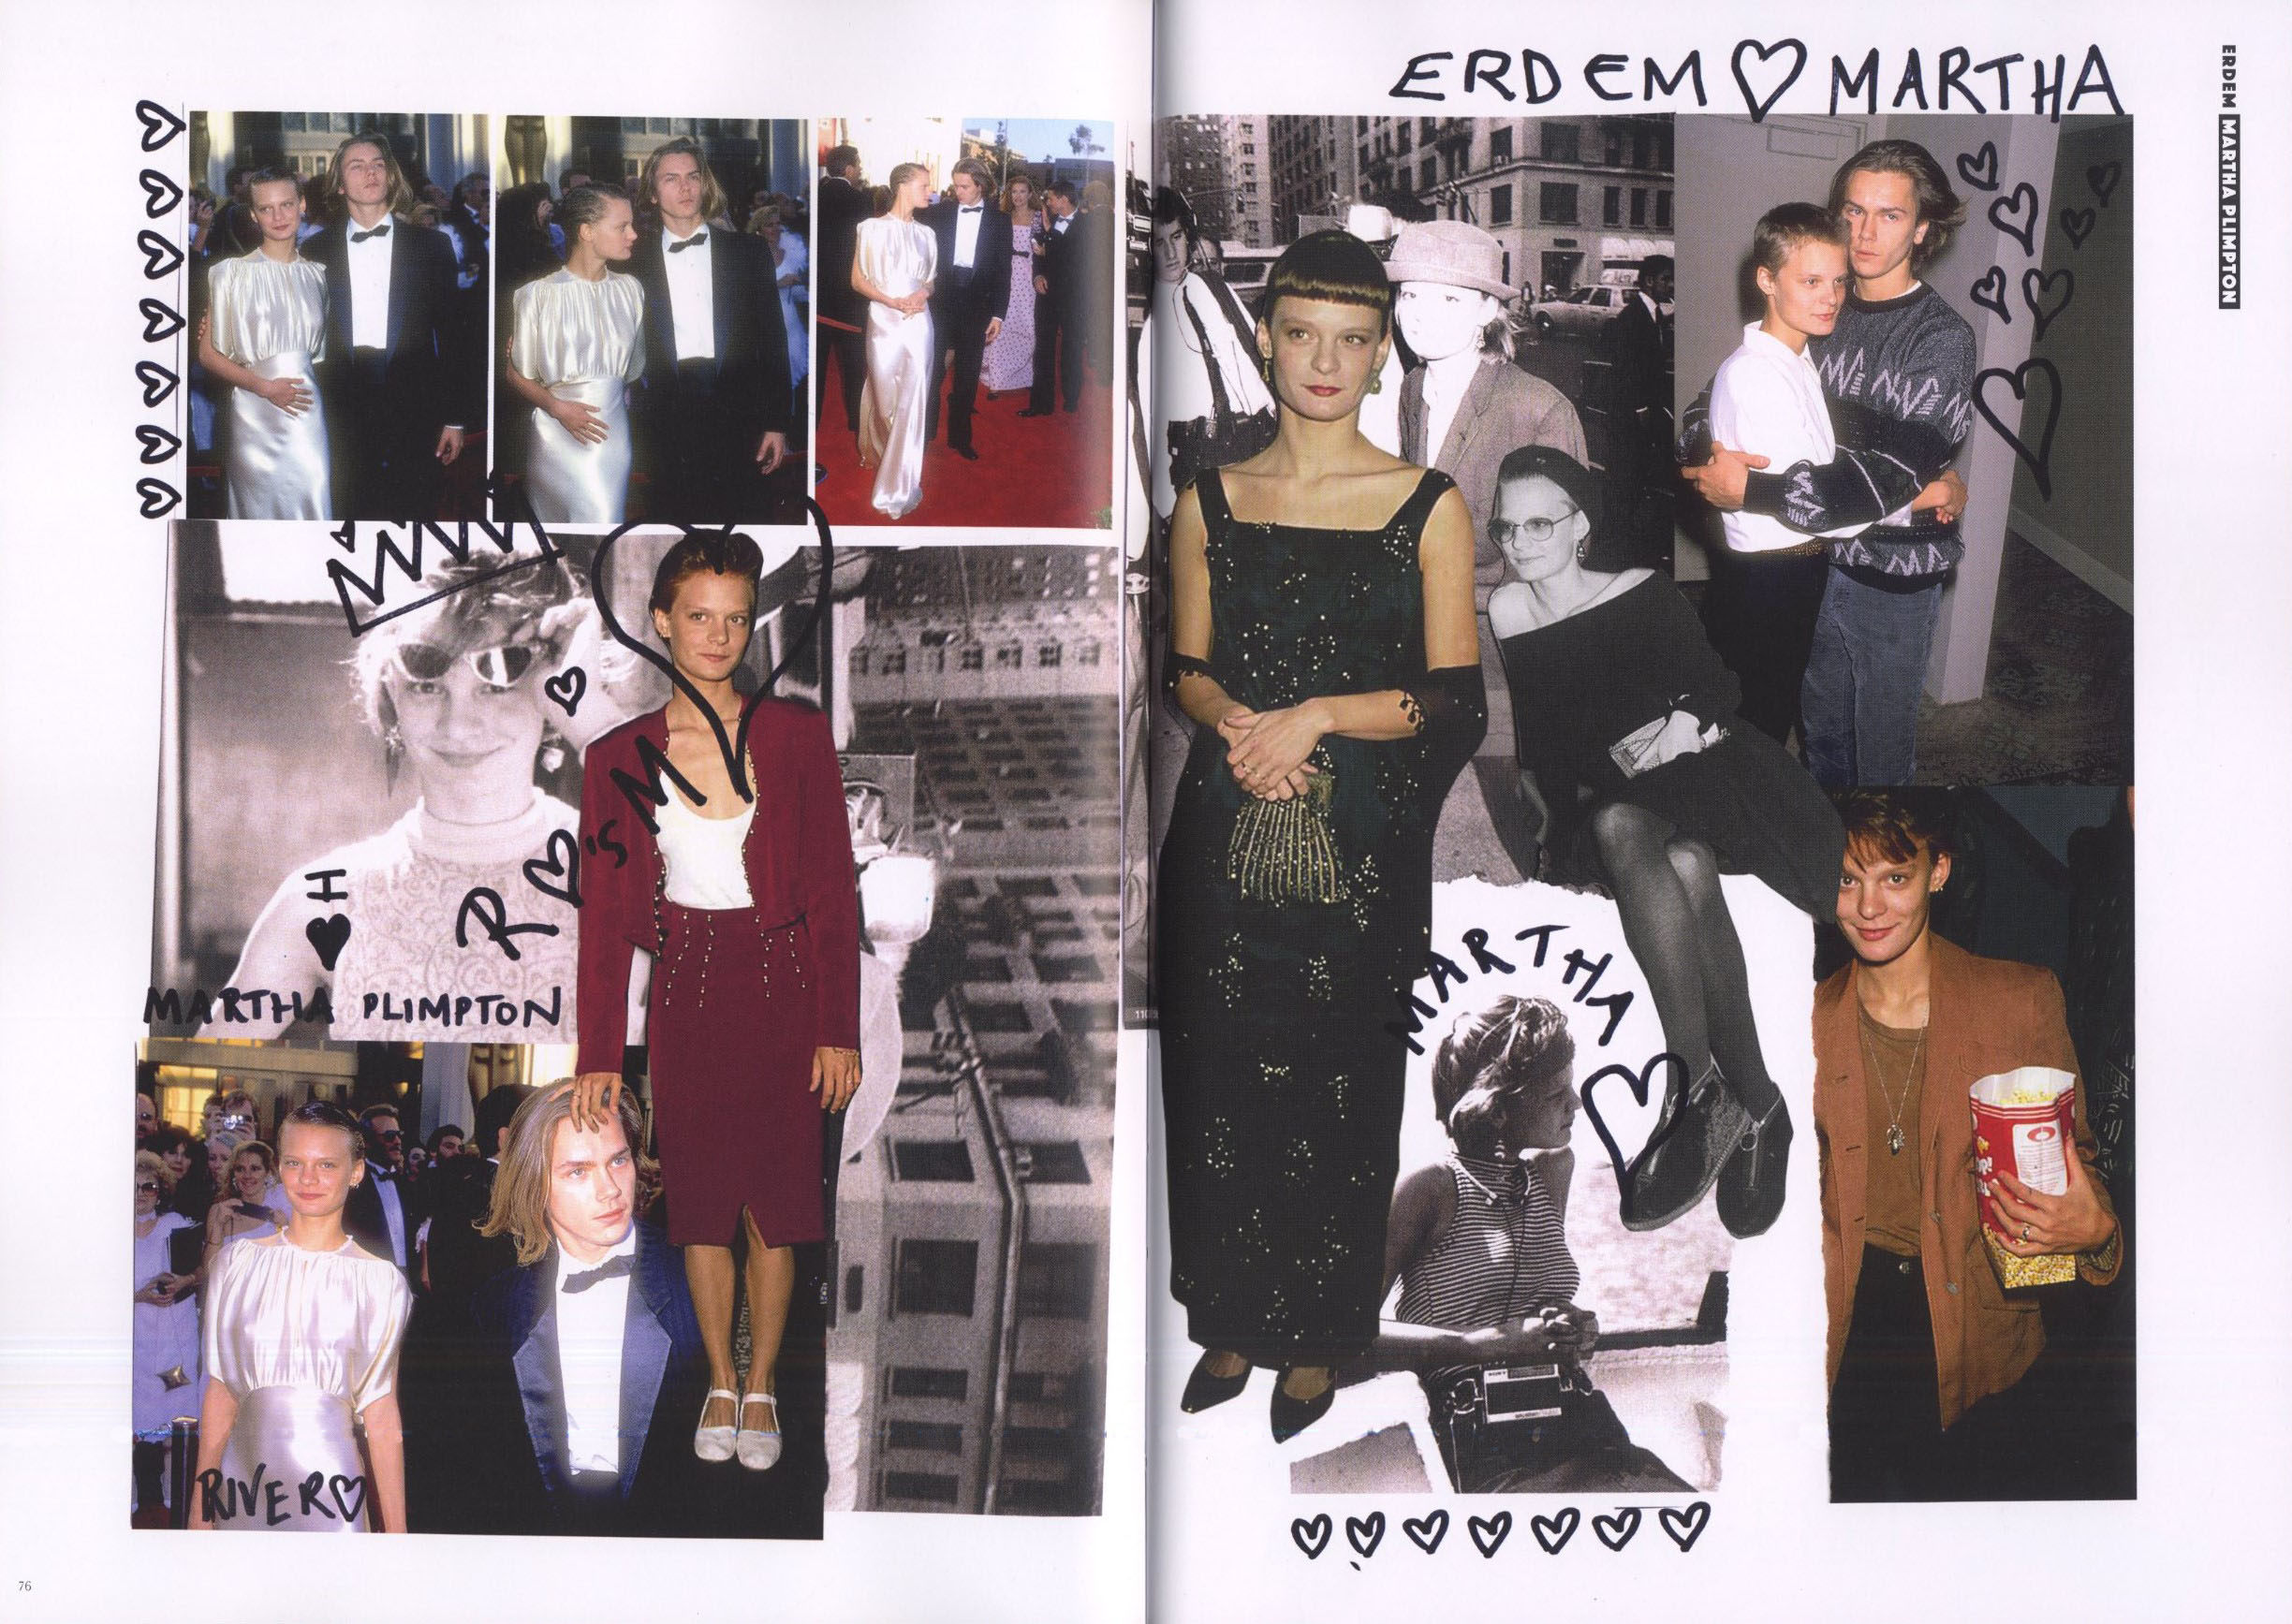 ERDEM | MARTHA PLIMPTON | FANPAGES | ISSUE 2